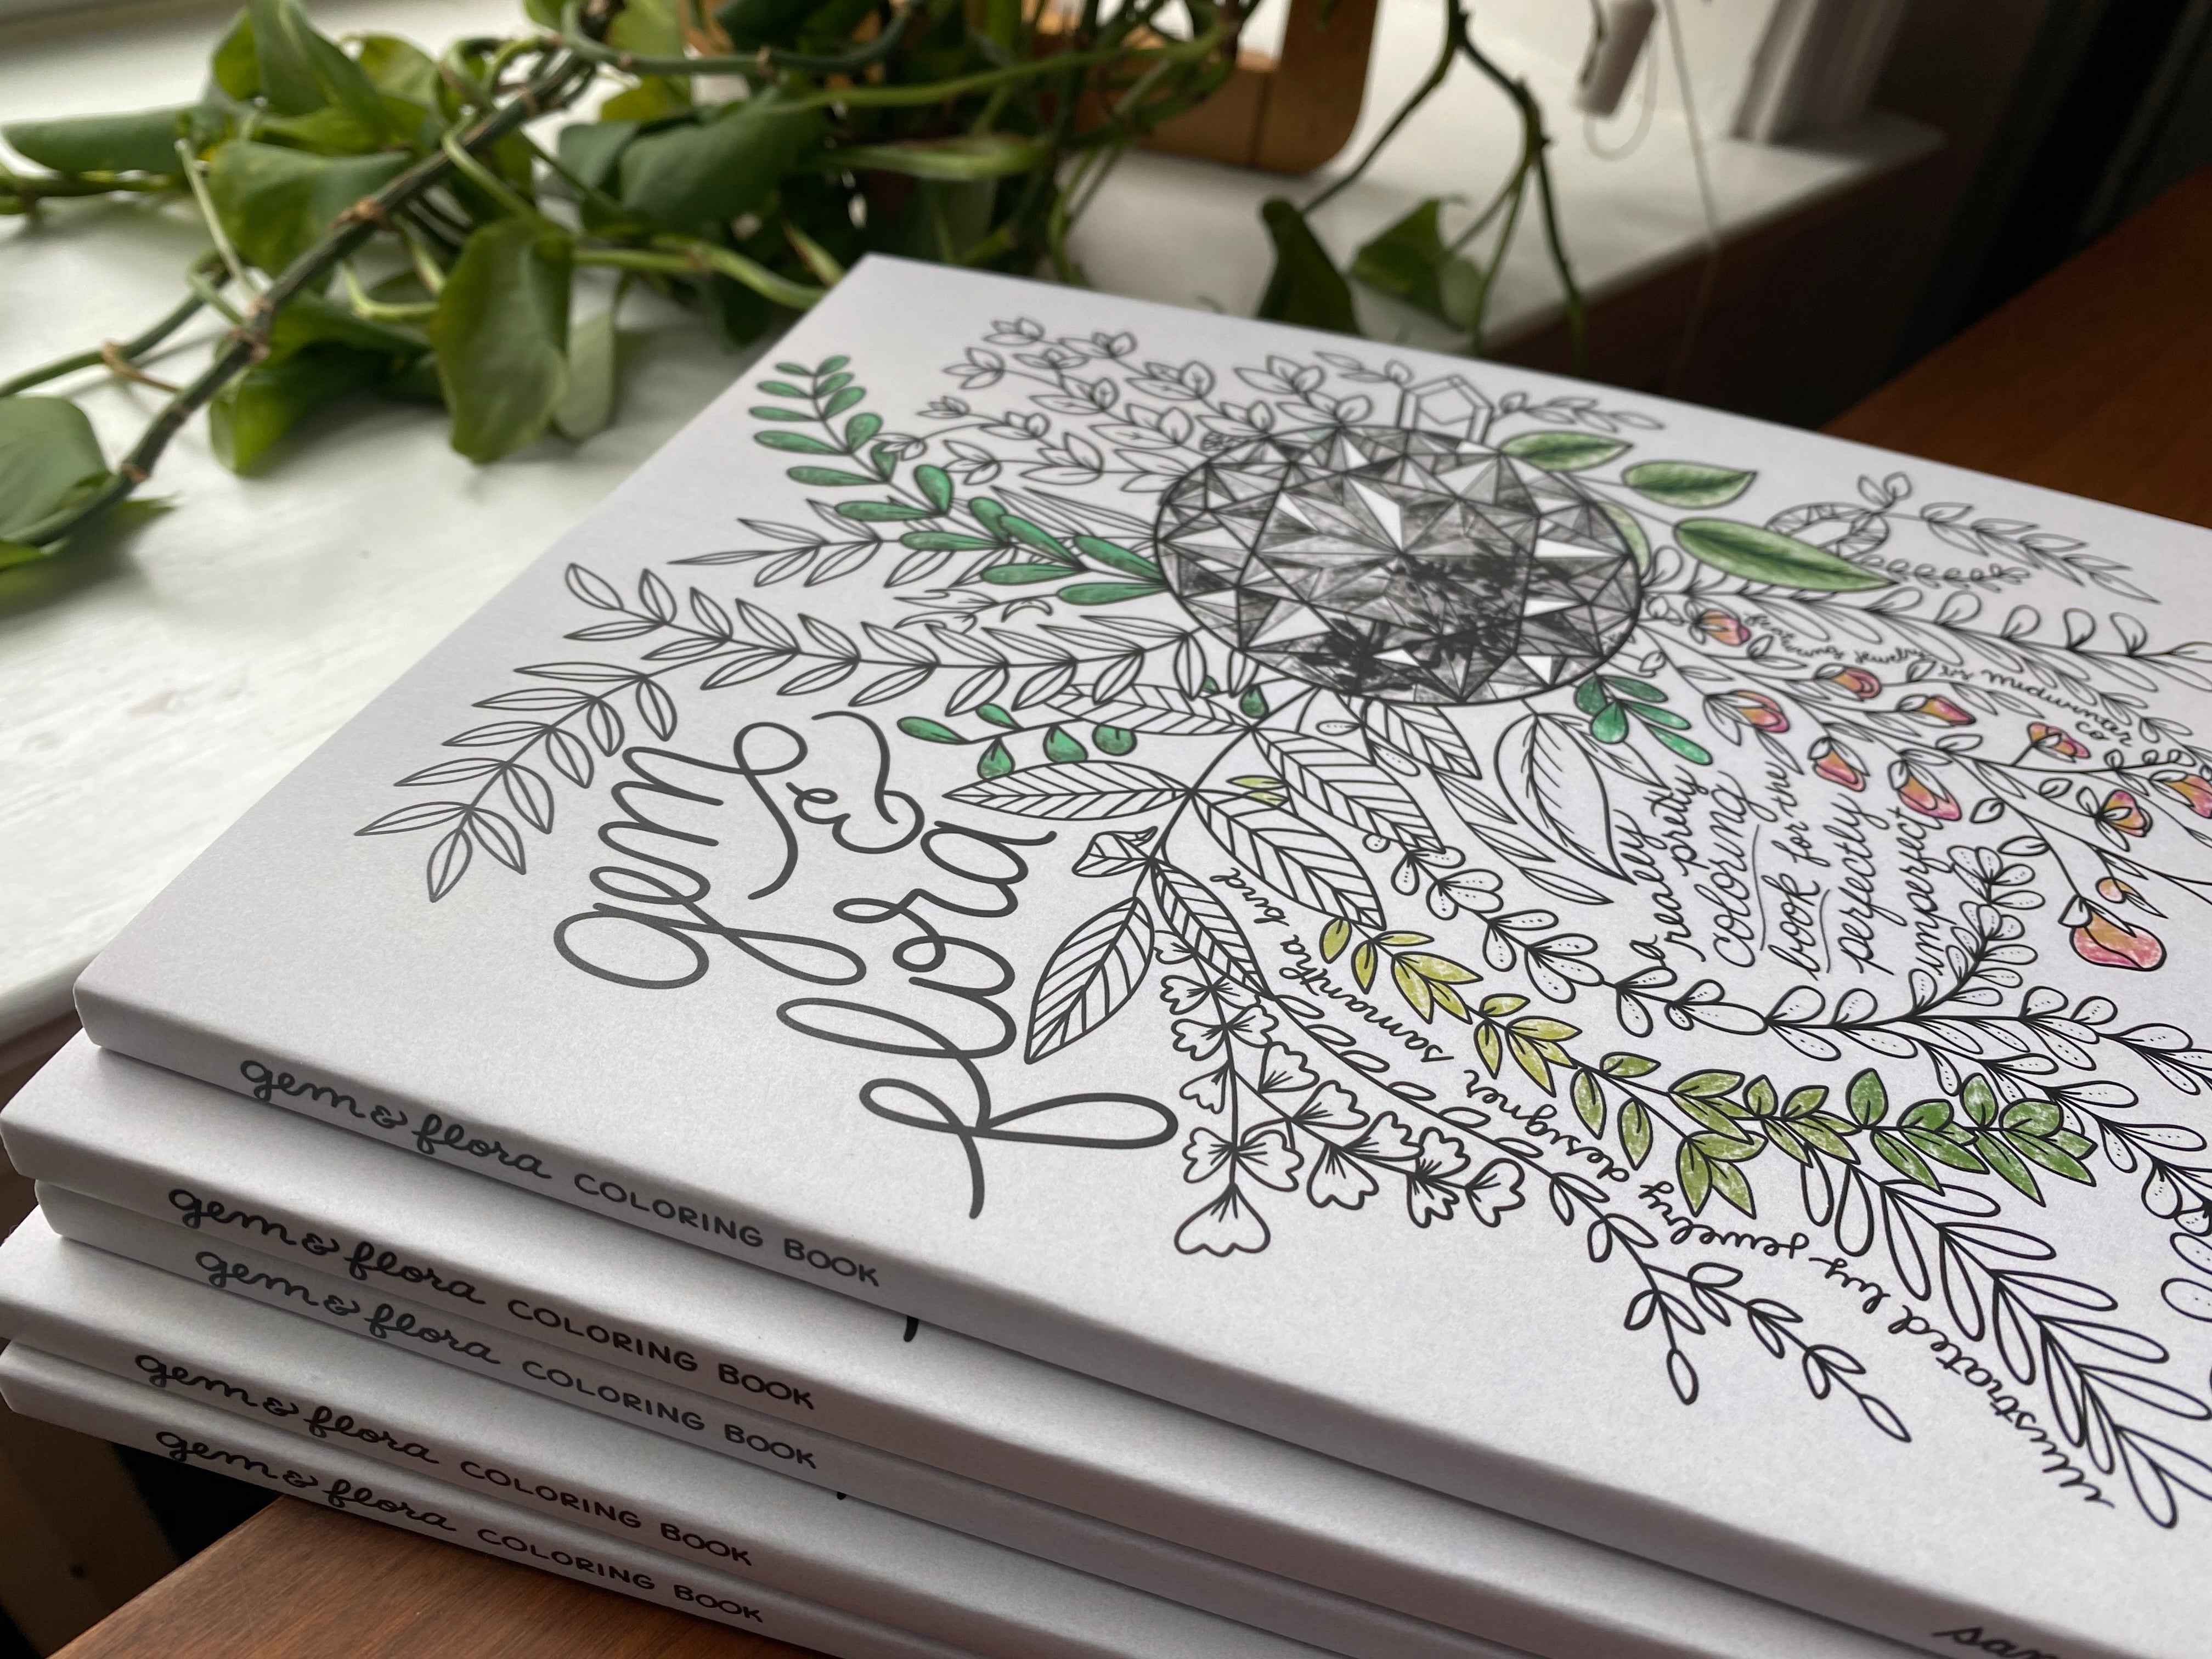 Gem & Flora Coloring Book - Illustrated by Samantha Bird of Midwinter Co. - Salt & Pepper Celestial Diamond Engagement Rings and Wedding Bands  by Midwinter Co.